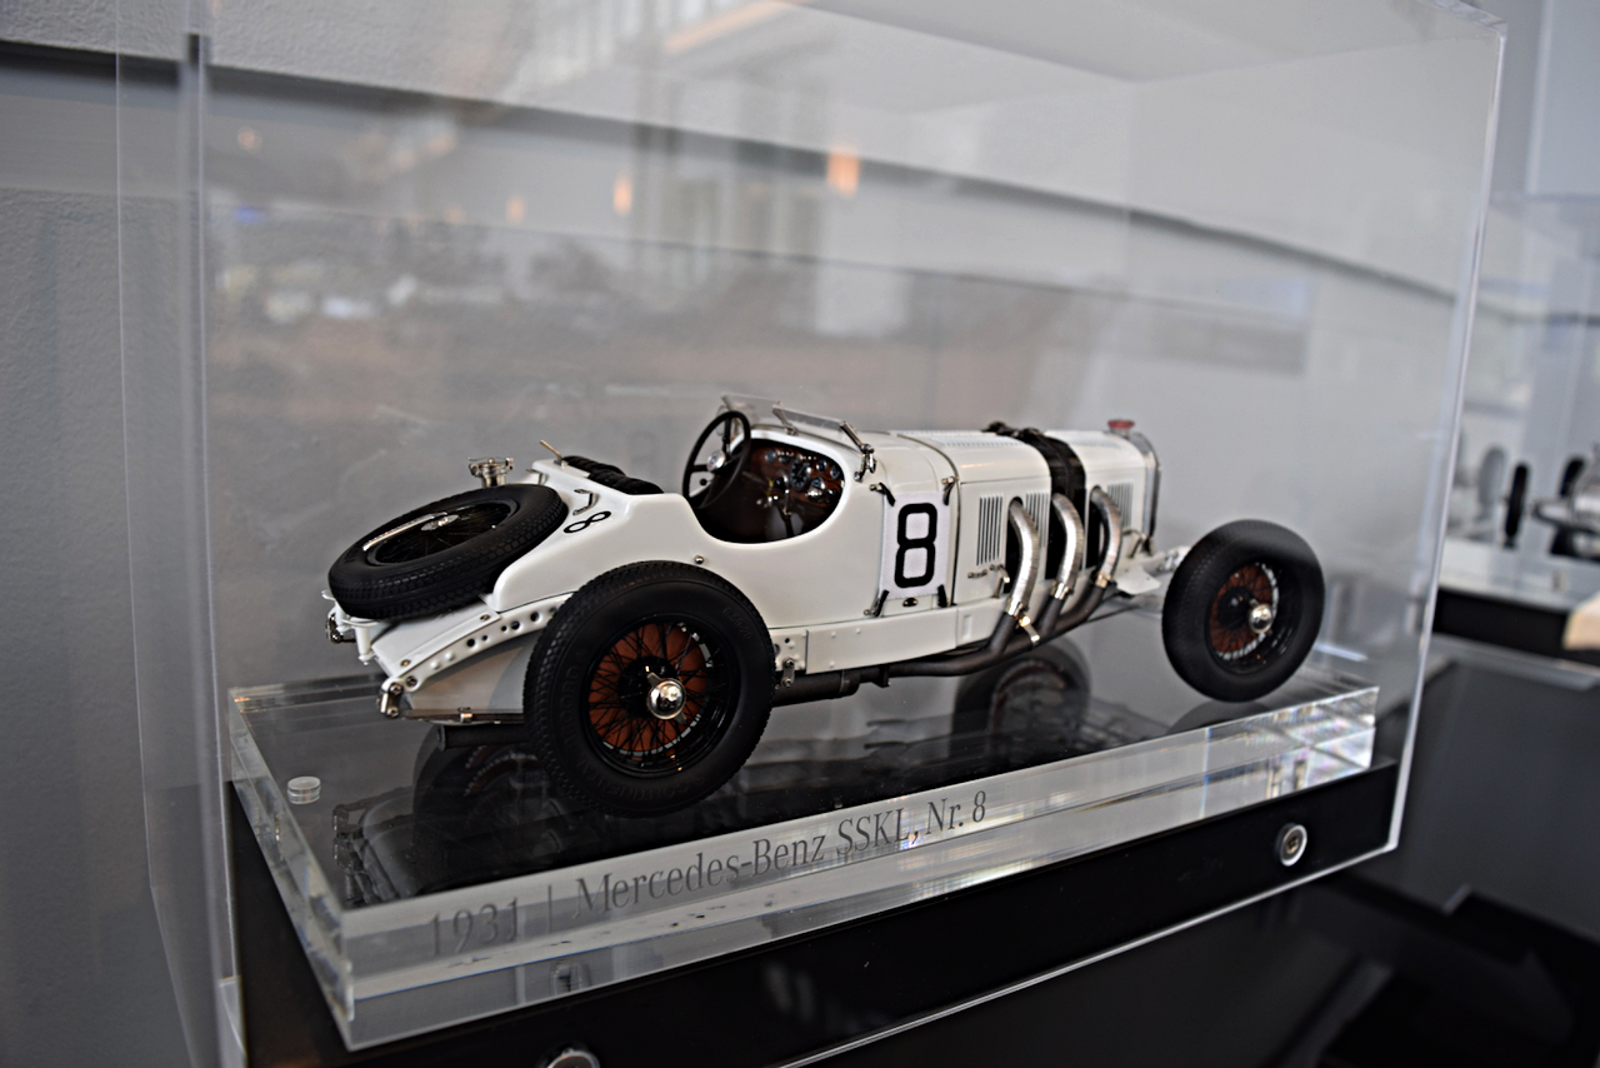 Due to rarity, the museum did not have any of the actual historic racecars, but rather, detailed scale models.